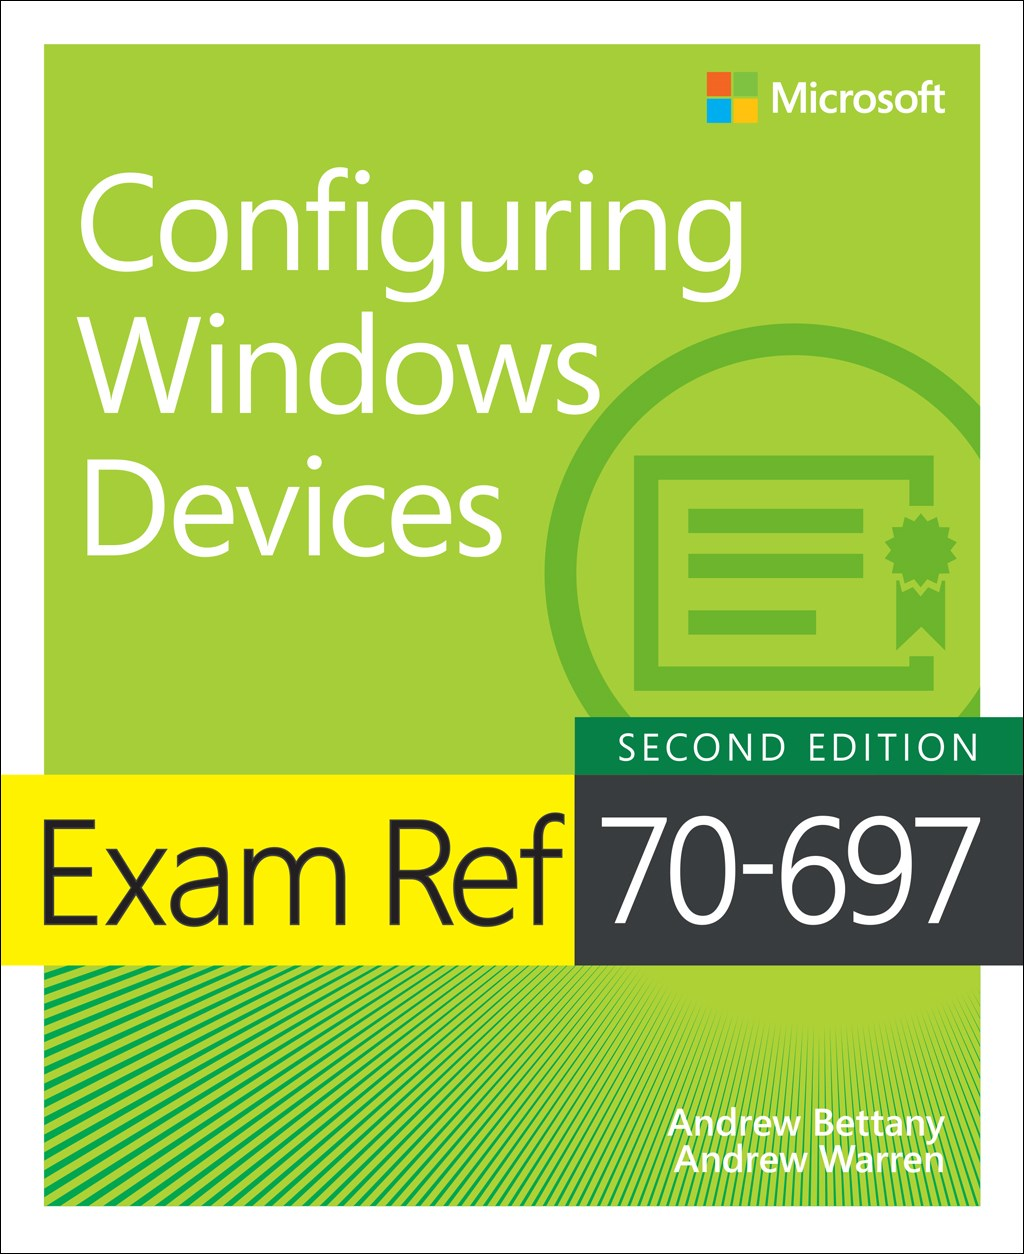 Exam Ref 70-697 Configuring Windows Devices, 2nd Edition